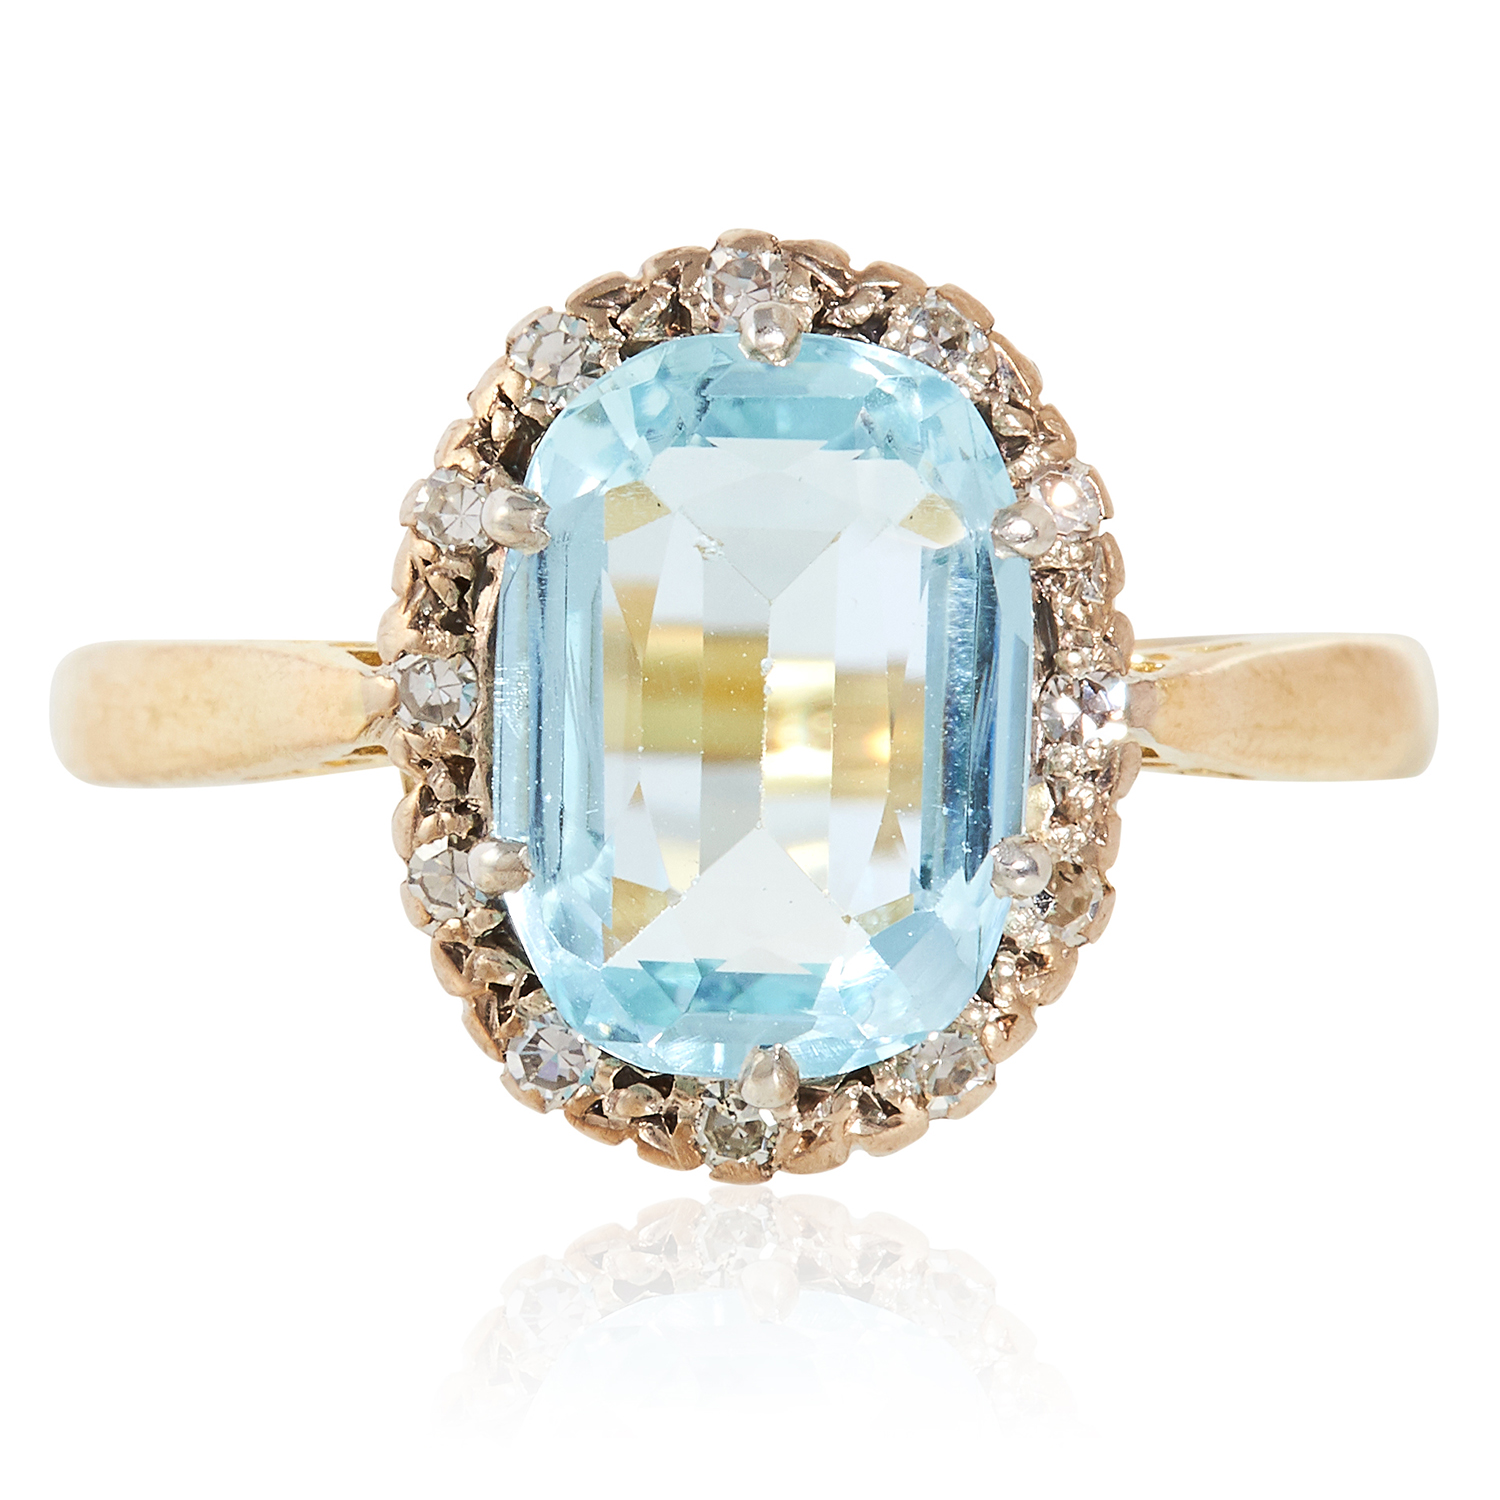 Los 19 - AN AQUAMARINE AND DIAMOND CLUSTER RING in yellow gold, set with a cushion cut aquamarine of